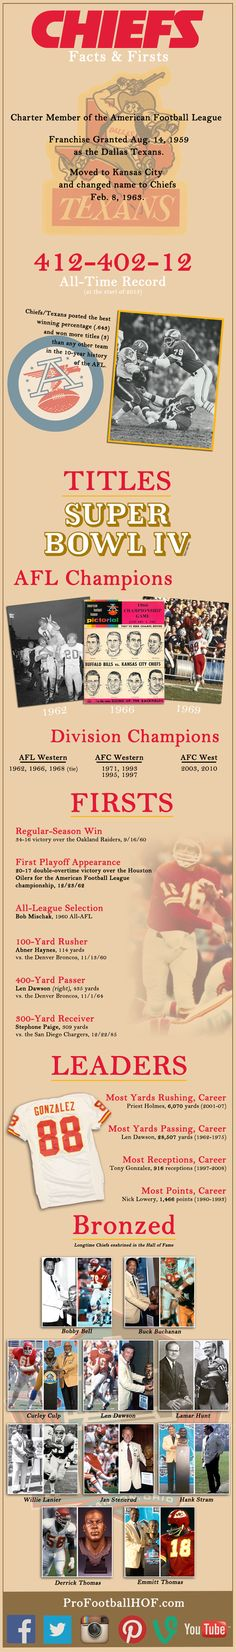 Facts and Firsts: Kansas City Chiefs #Infographic